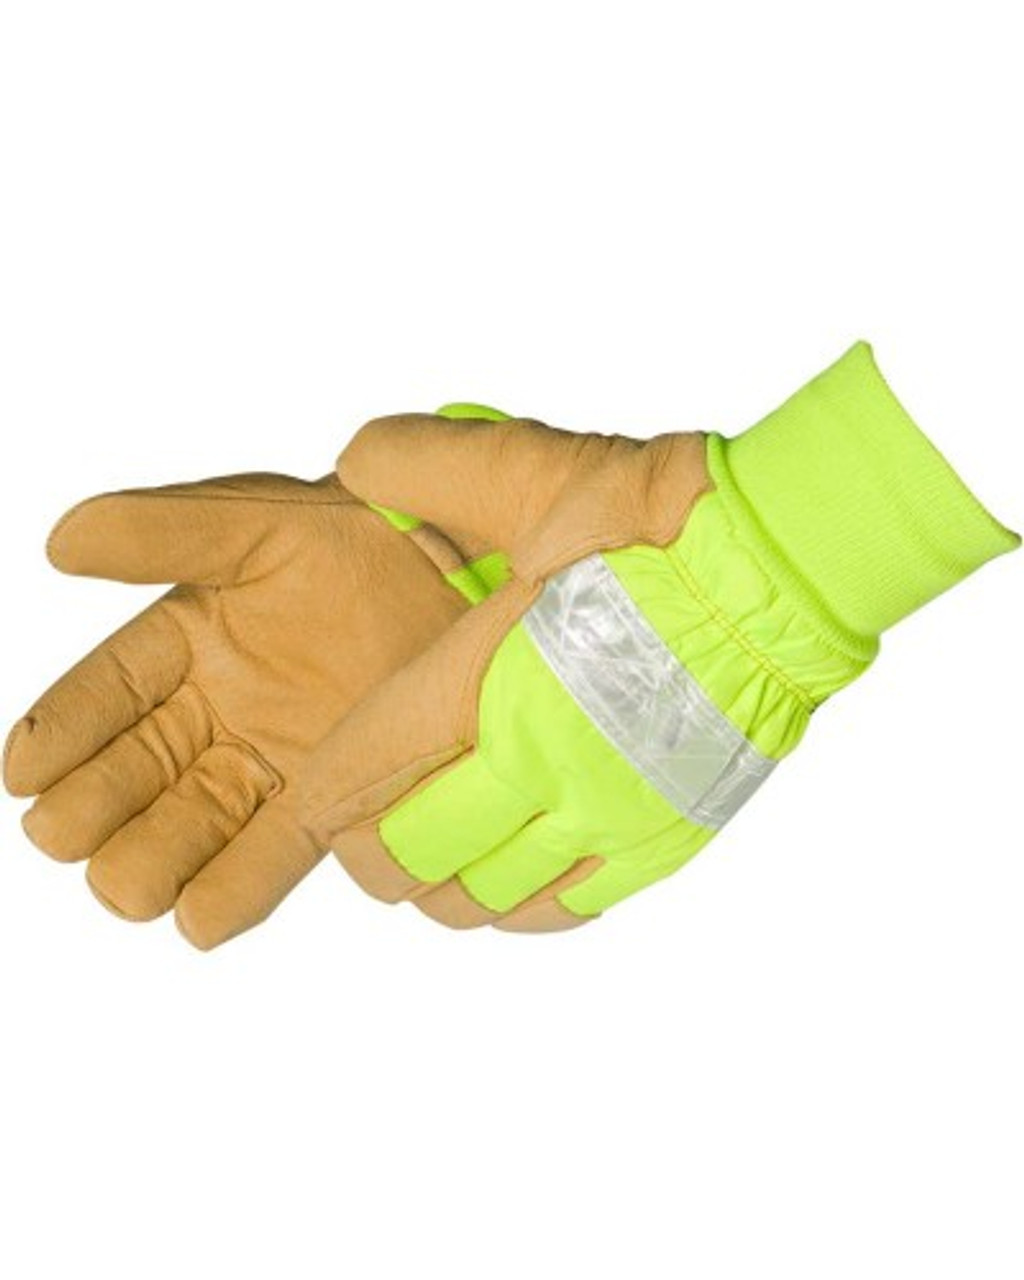 Durawear Thermal Lined Waterprood Premium Grain Pigskin with Reflective Knuckles